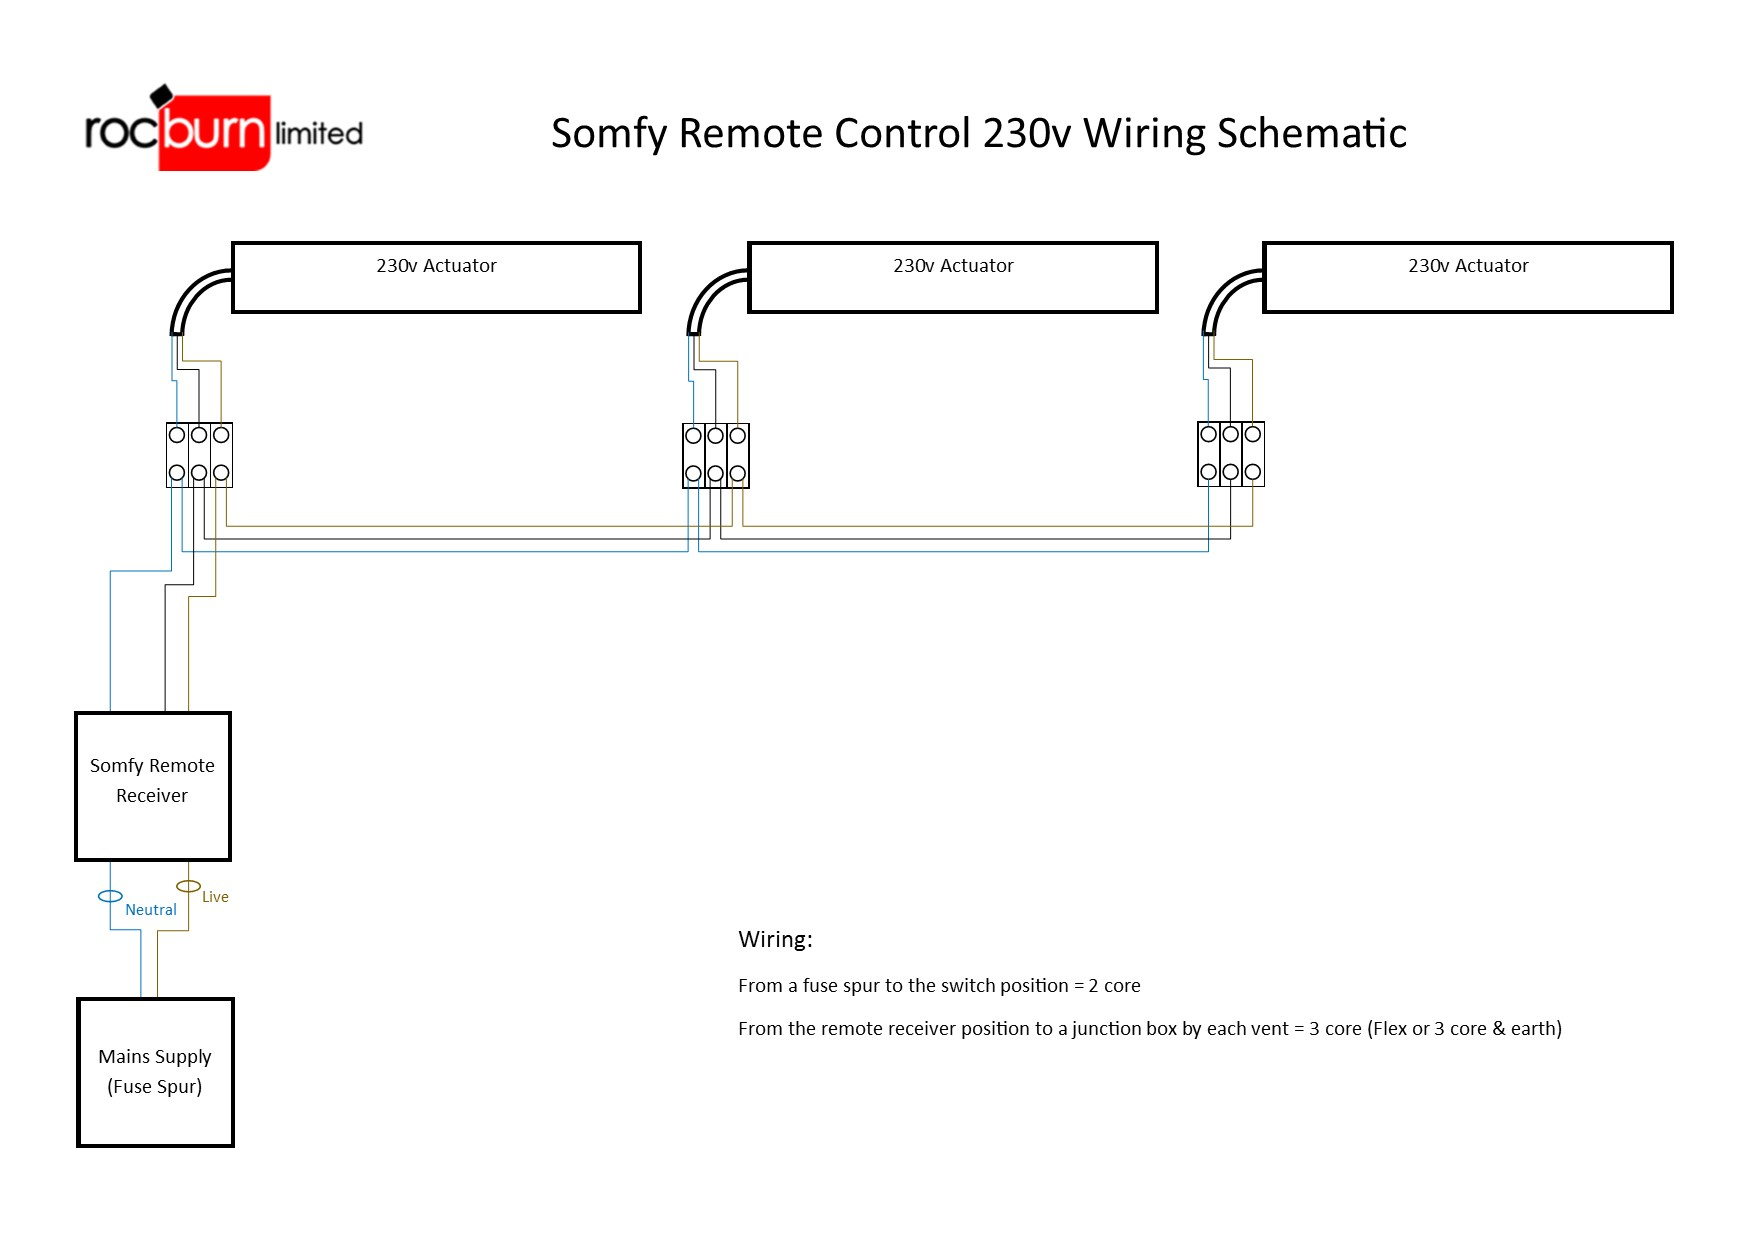 Somfy Control 230v Actuators how to wire a mains voltage electric window opener or openers to 3 core and earth wiring diagram at virtualis.co